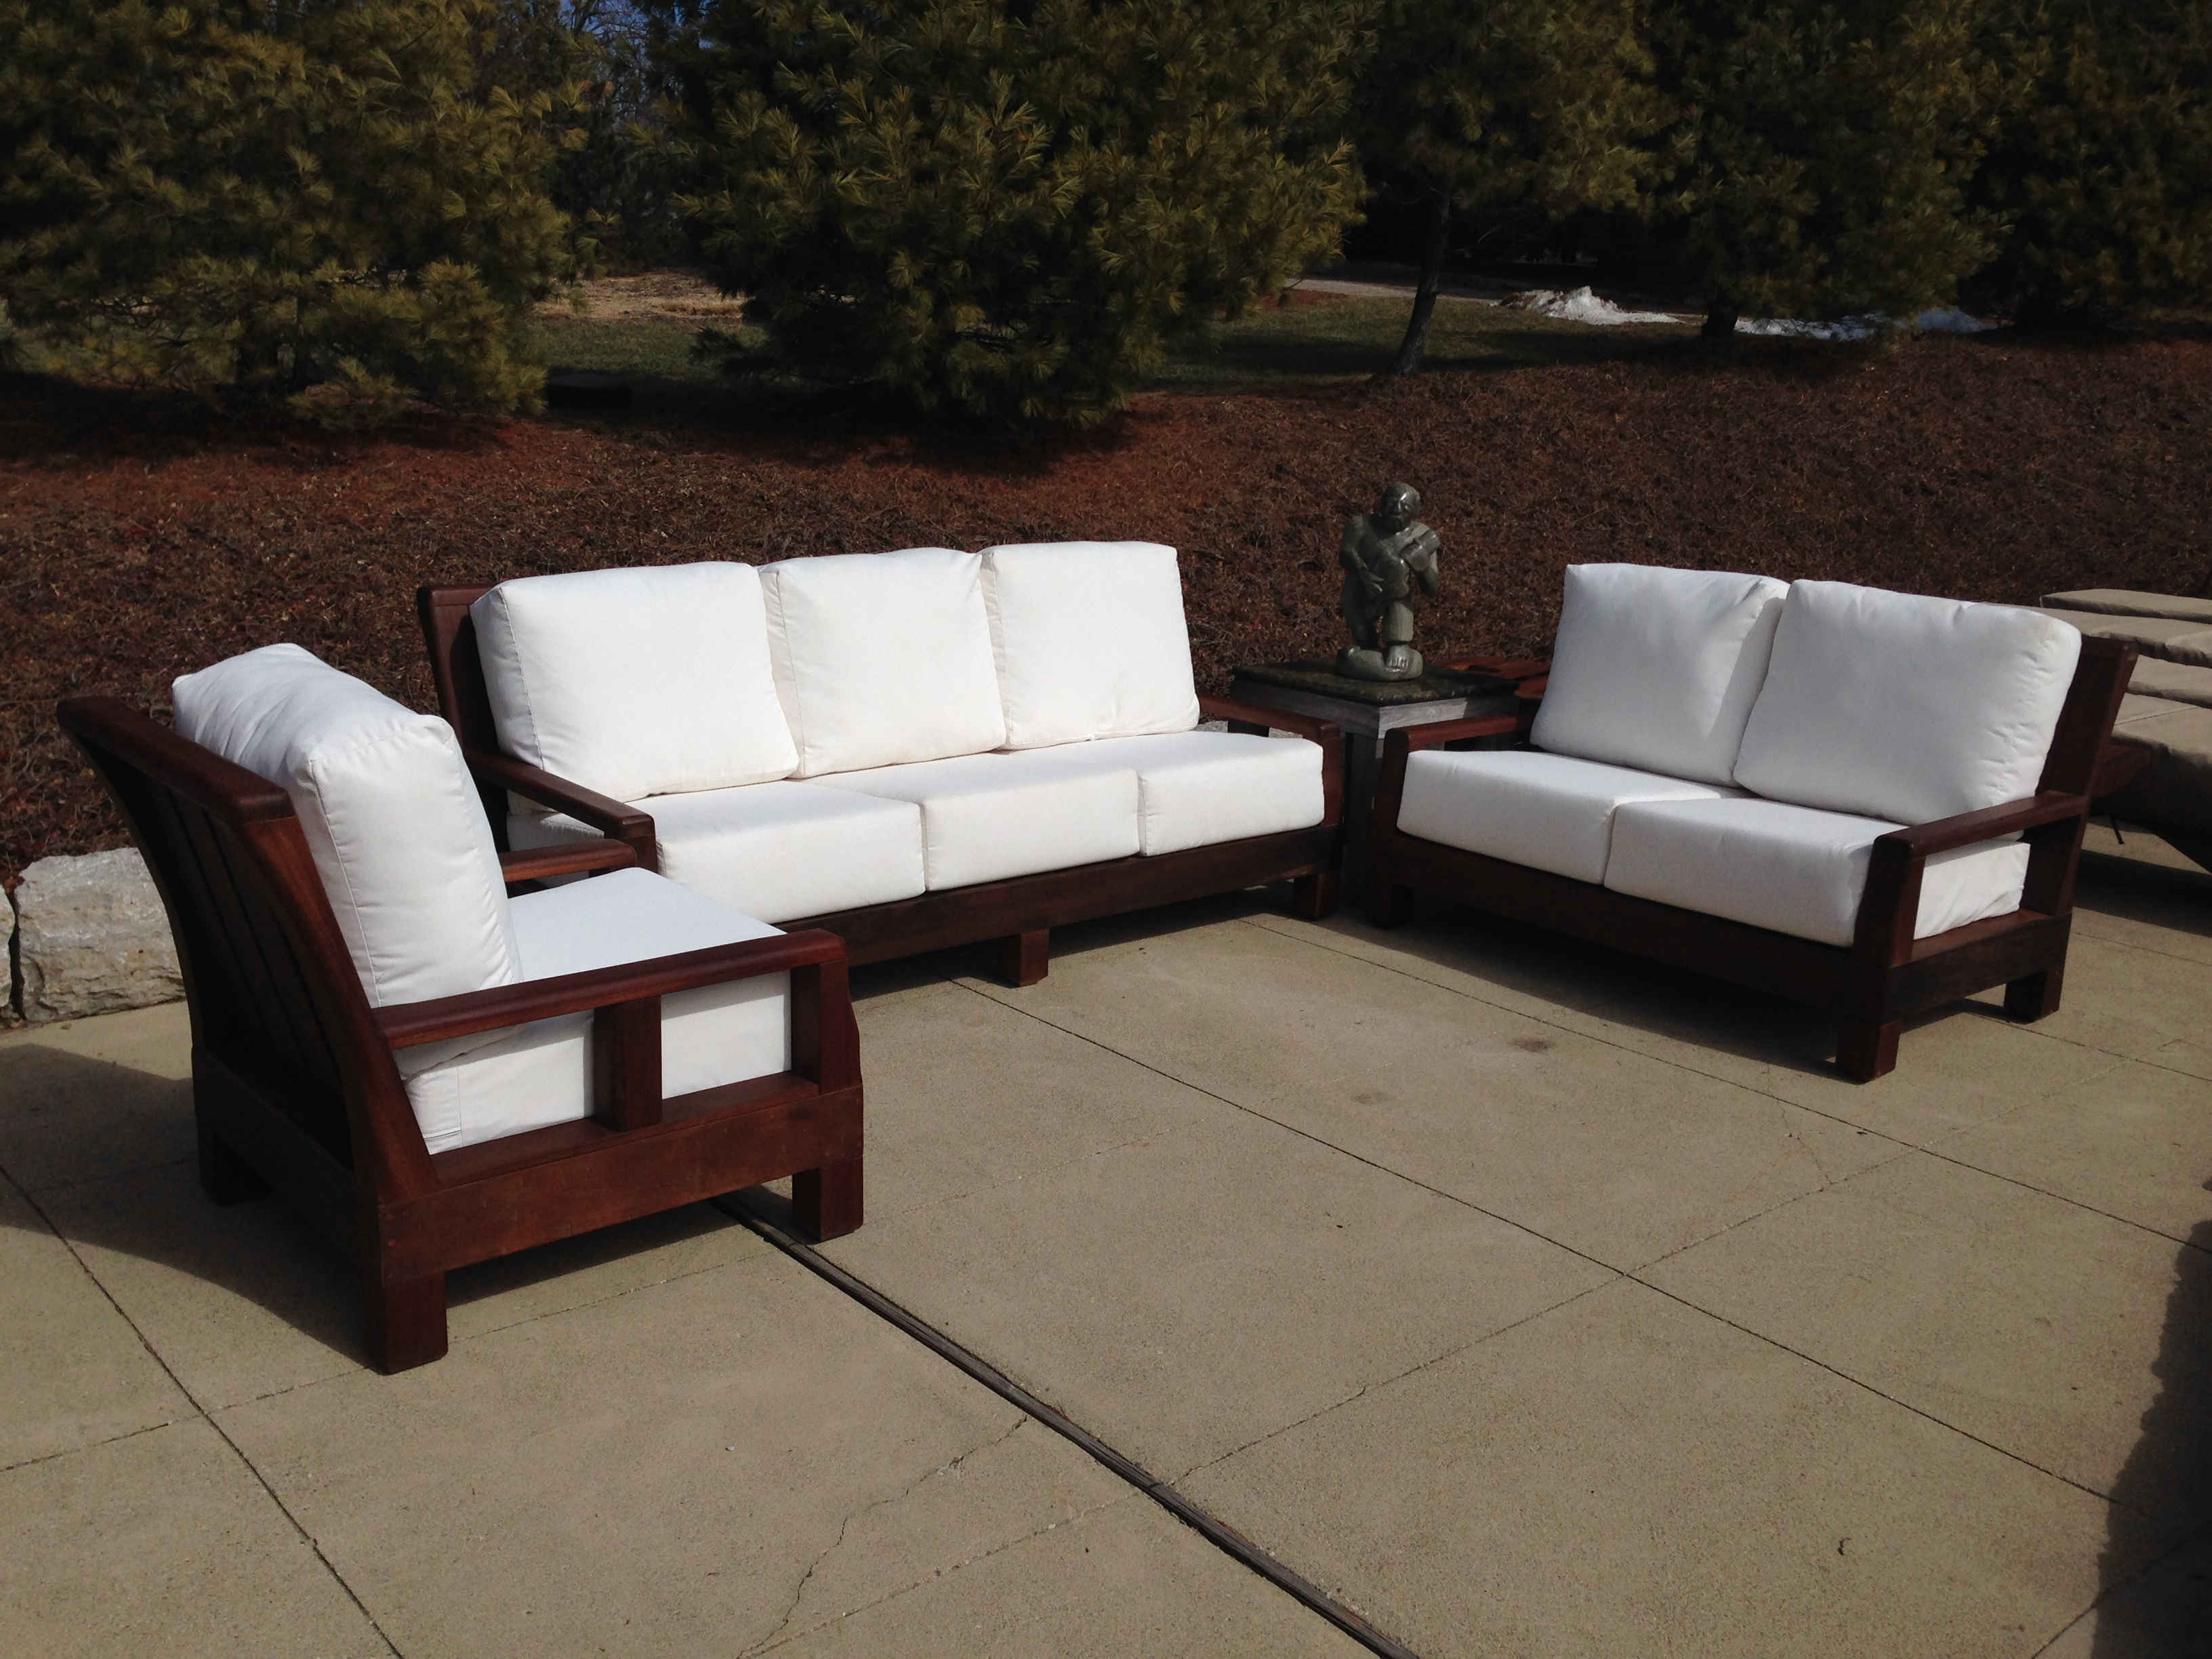 Home Bottega Handmade Outdoor Furniture Of Exceptional